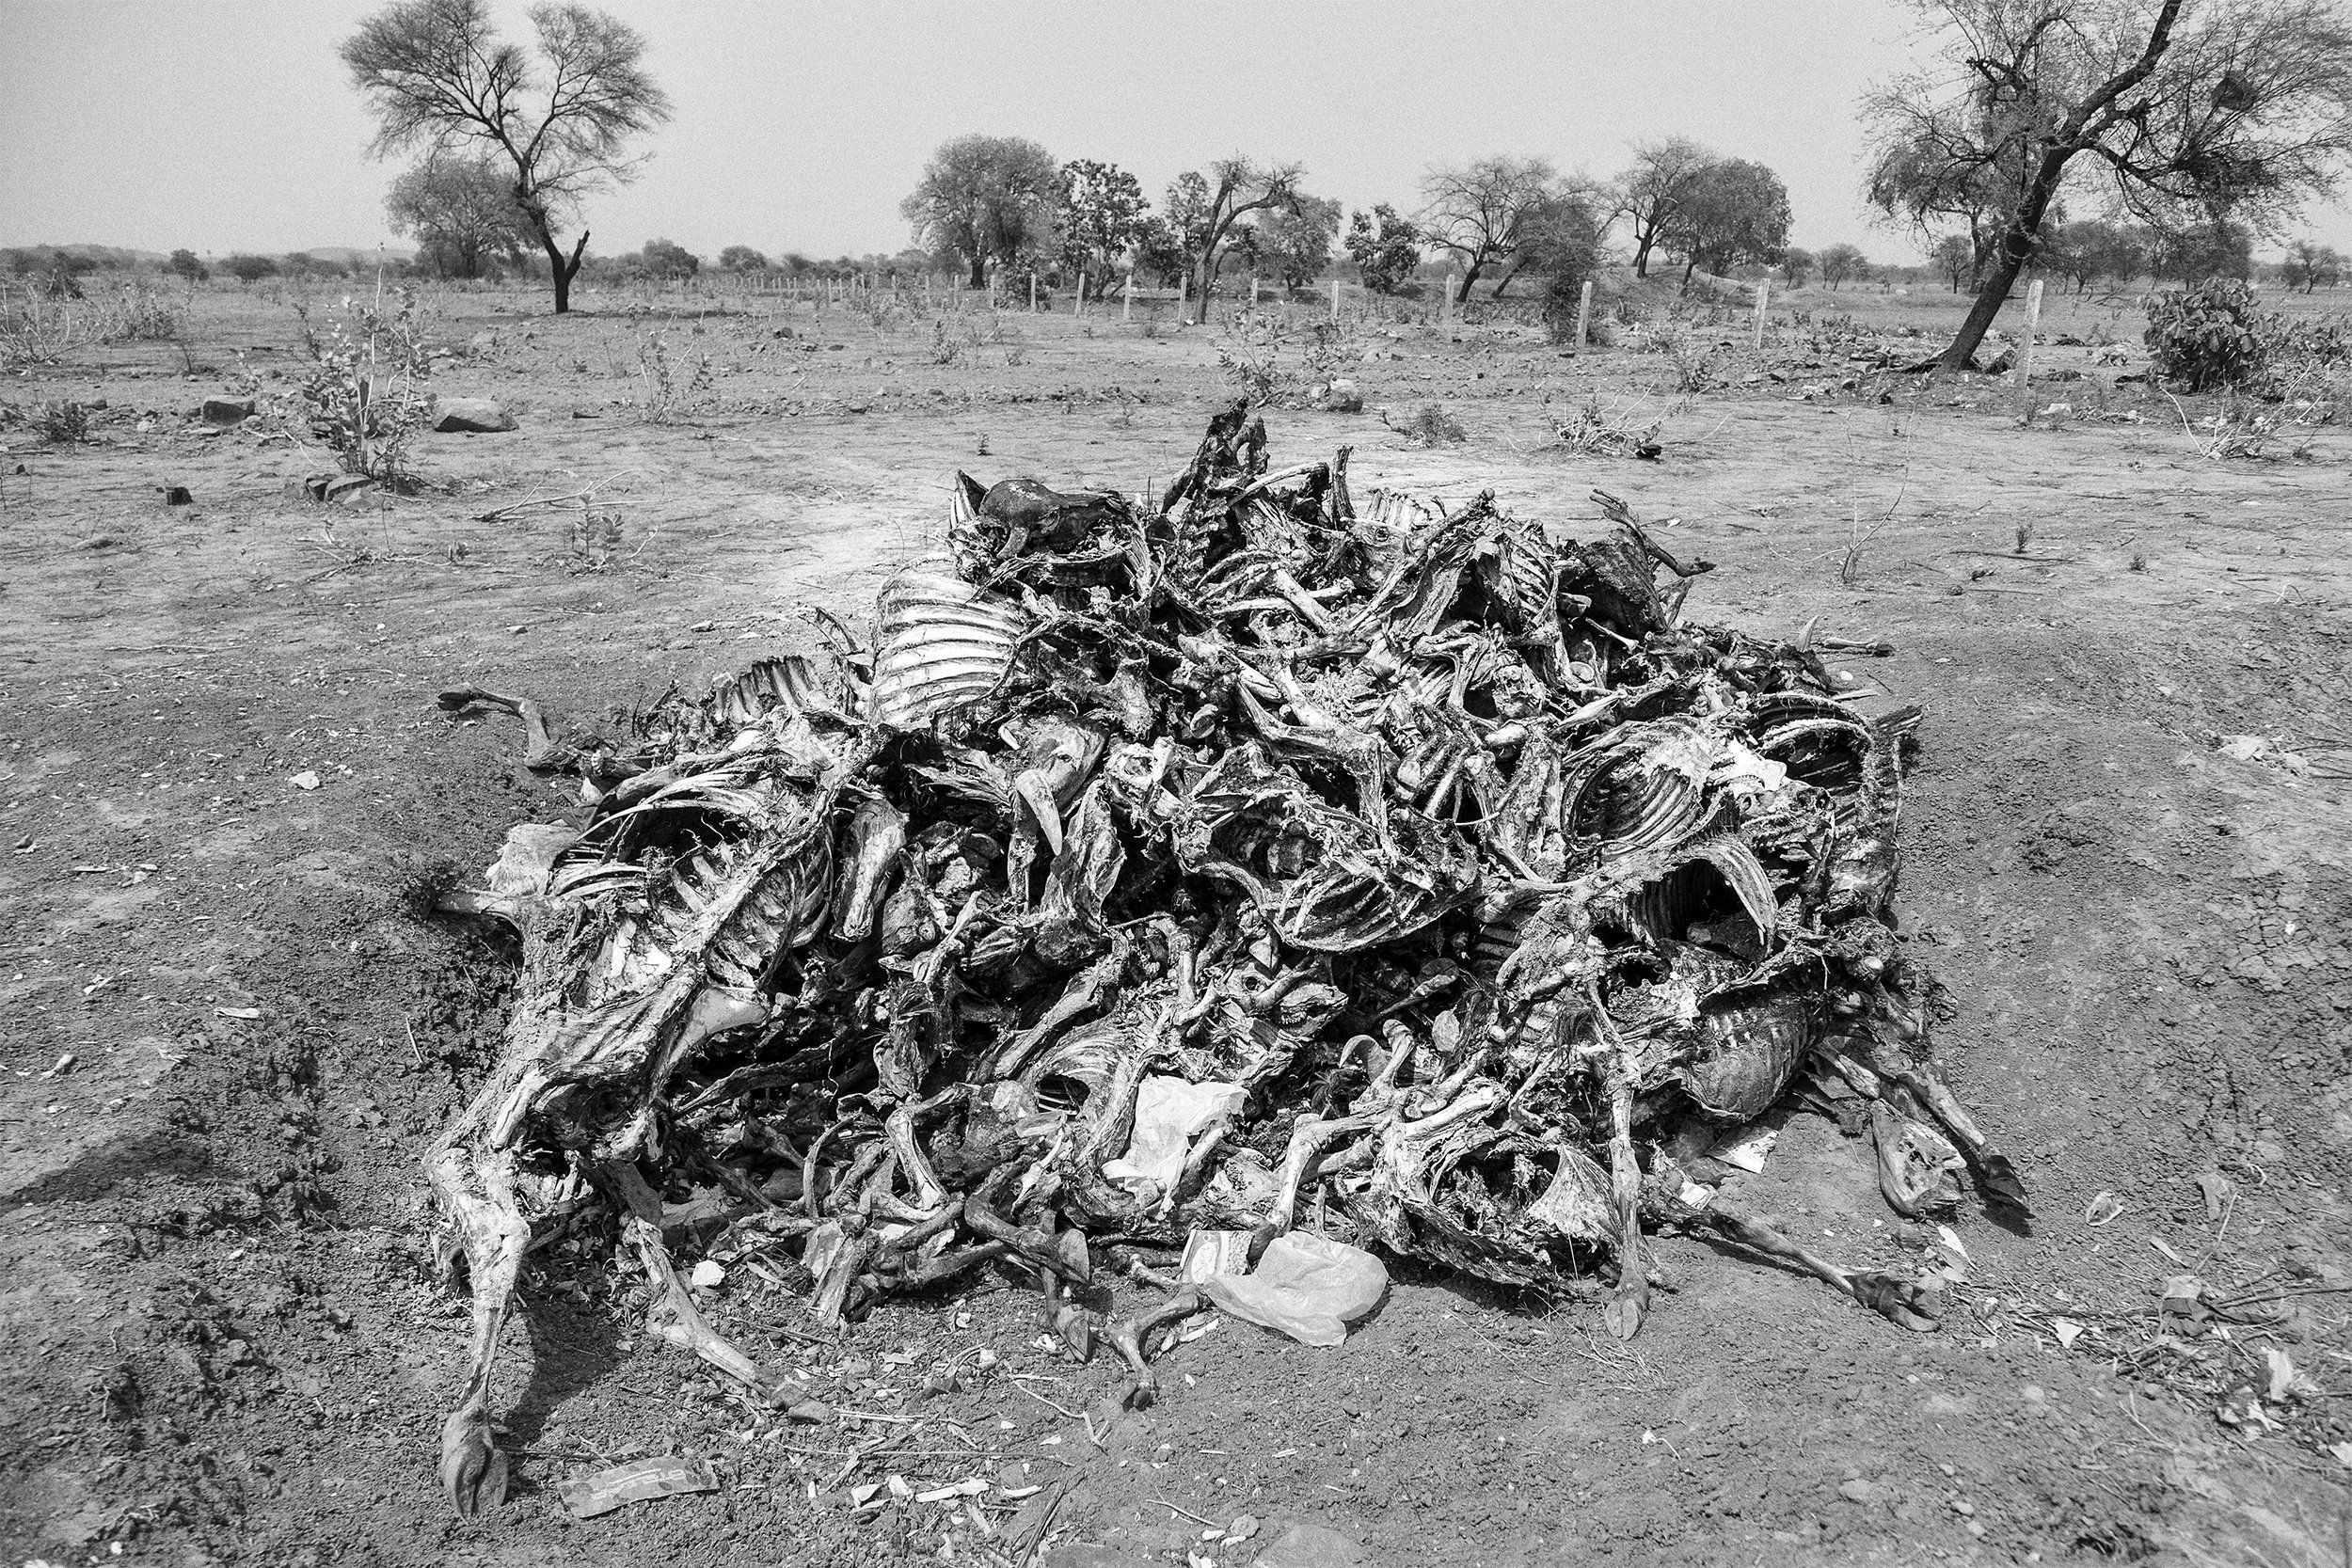 Piles of livestock carcasses are a common sight across the parched landscape of Bundelkhand.